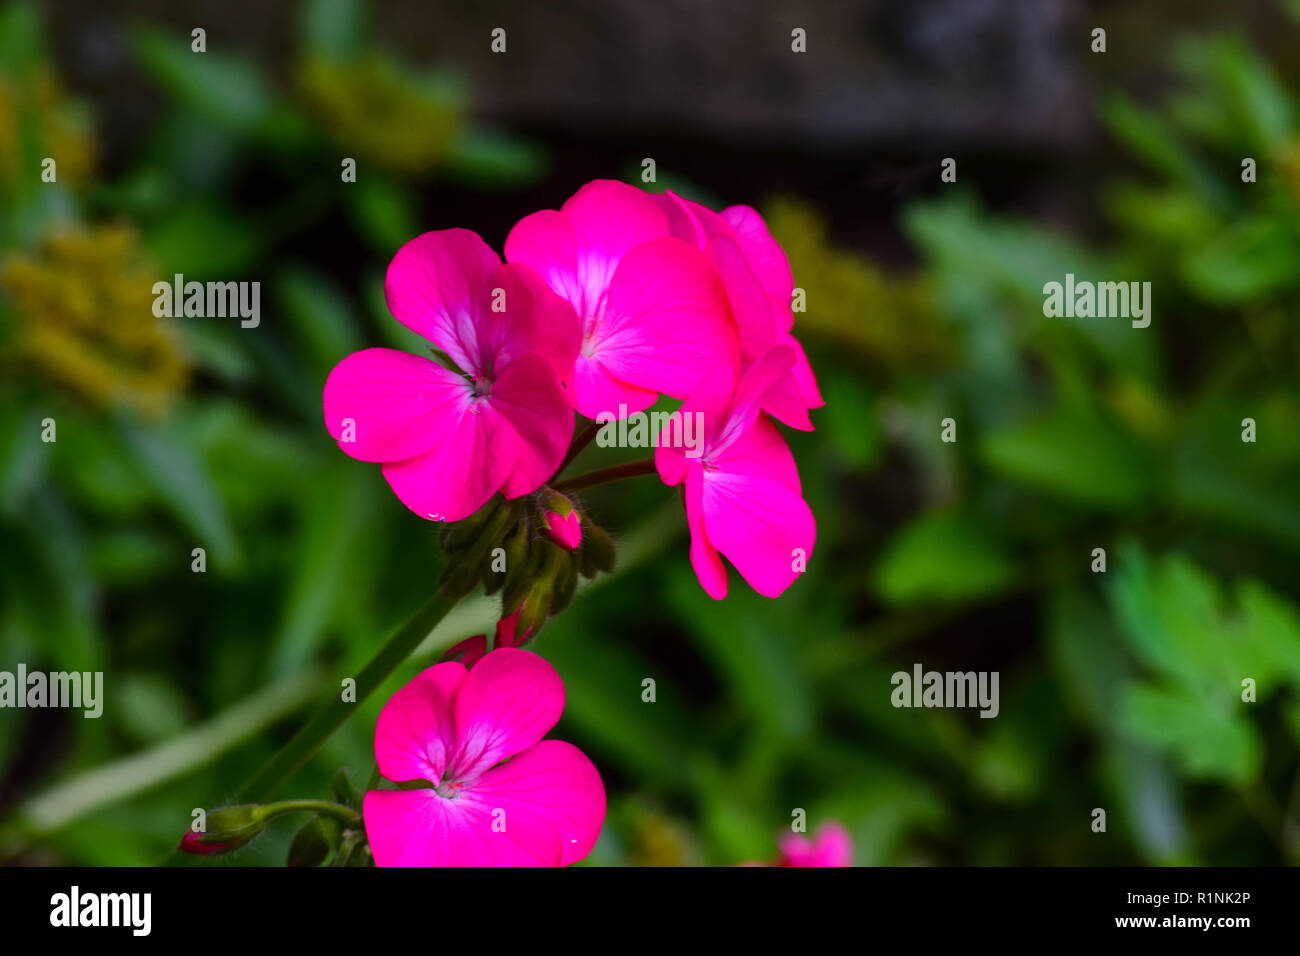 flowers blooming in the garden - Stock Image